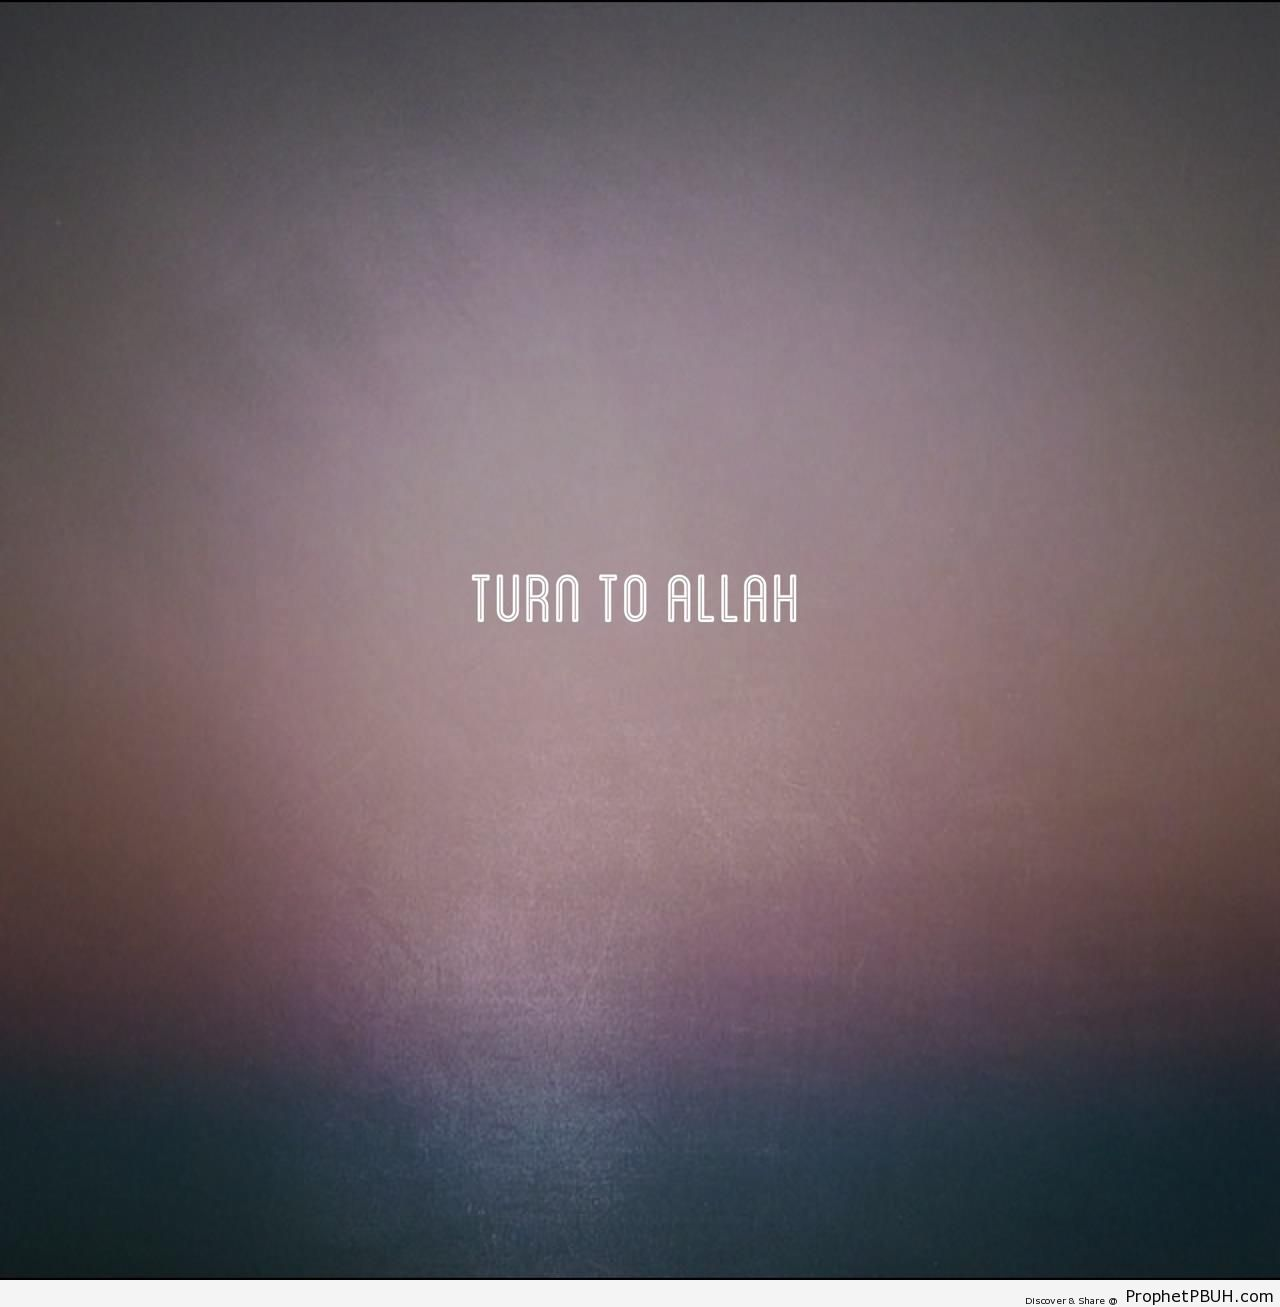 Turn to Allah - -Turn to Allah- Posters